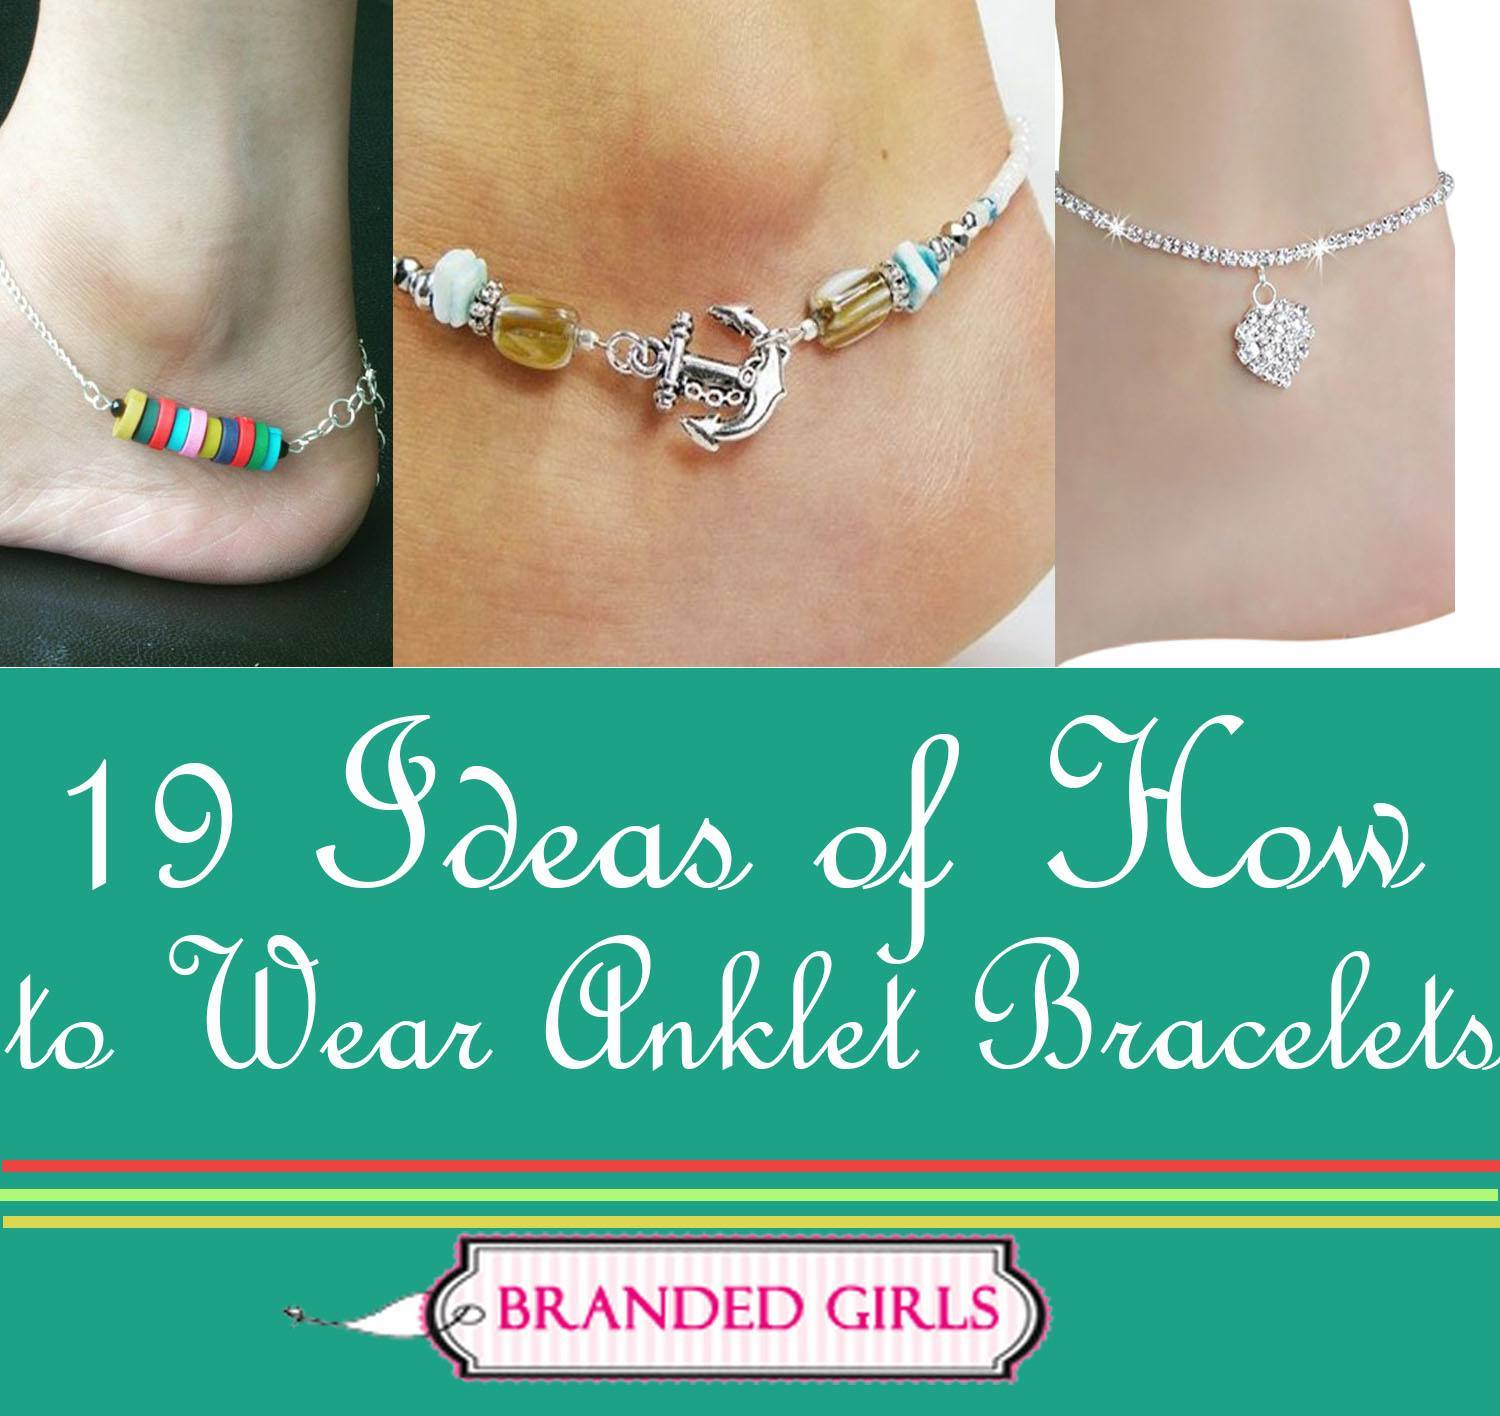 19 ideas of how to wear anklet bracelets